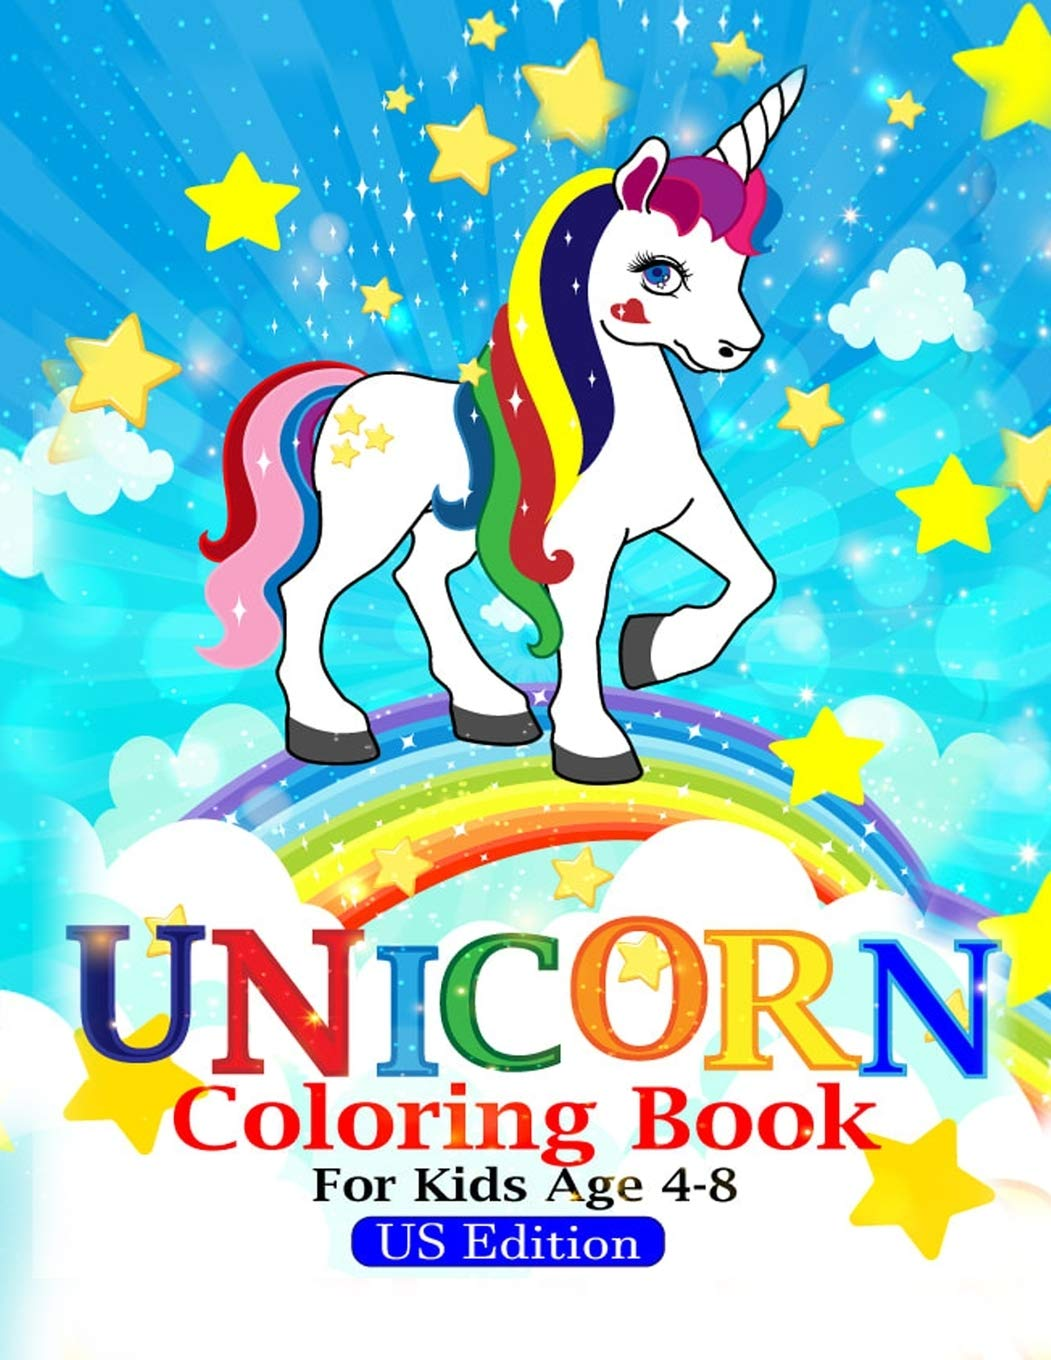 Unicorn Coloring Book For Kids Ages 4 8 Us Edition - Book ...